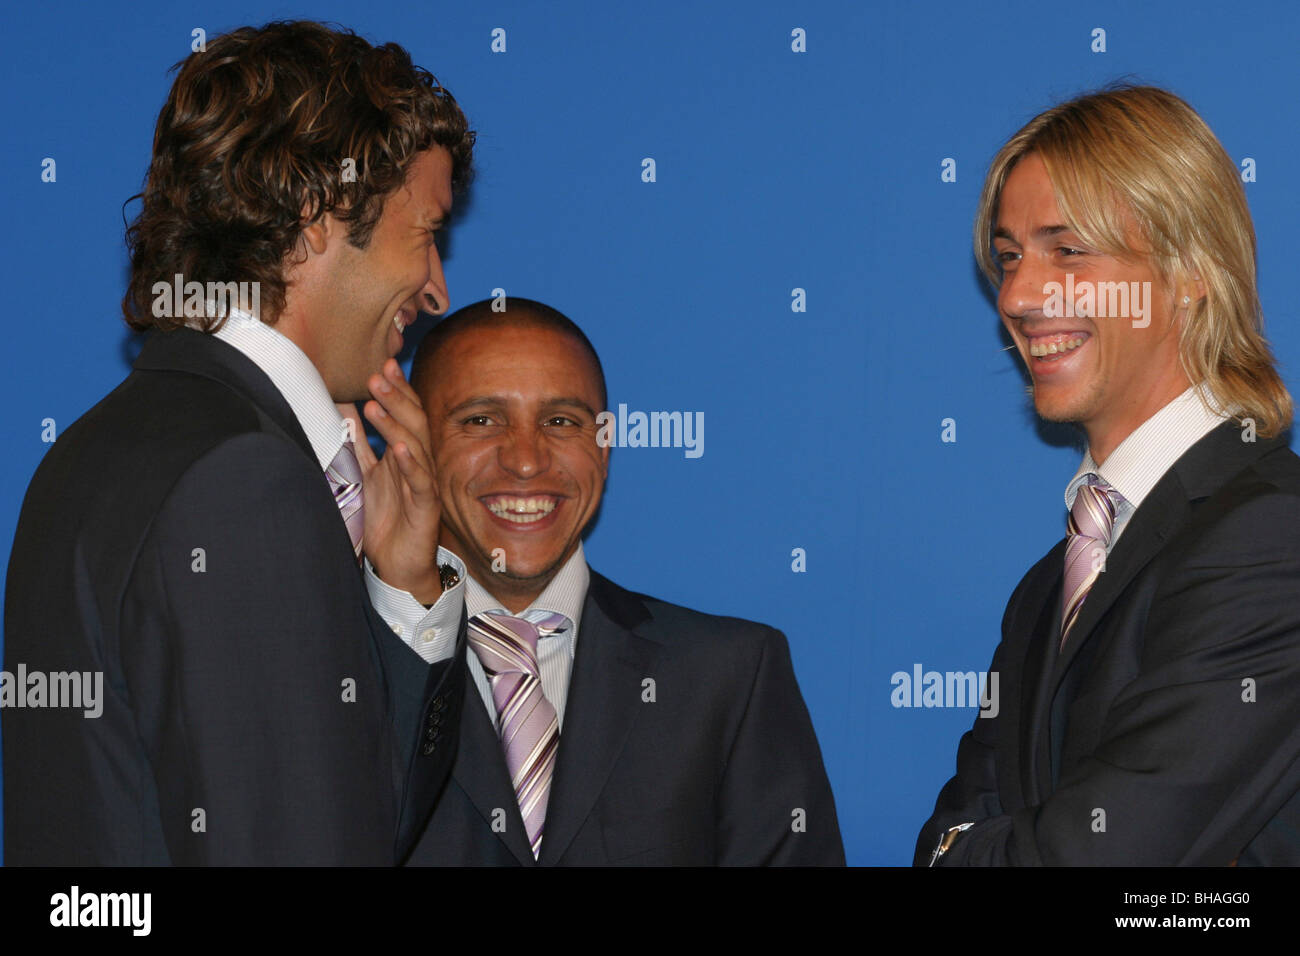 Raul Gonzalez, left, Roberto Carlos (centre) and Jose Maria Gutierrez, football players with Real Madrid football - Stock Image